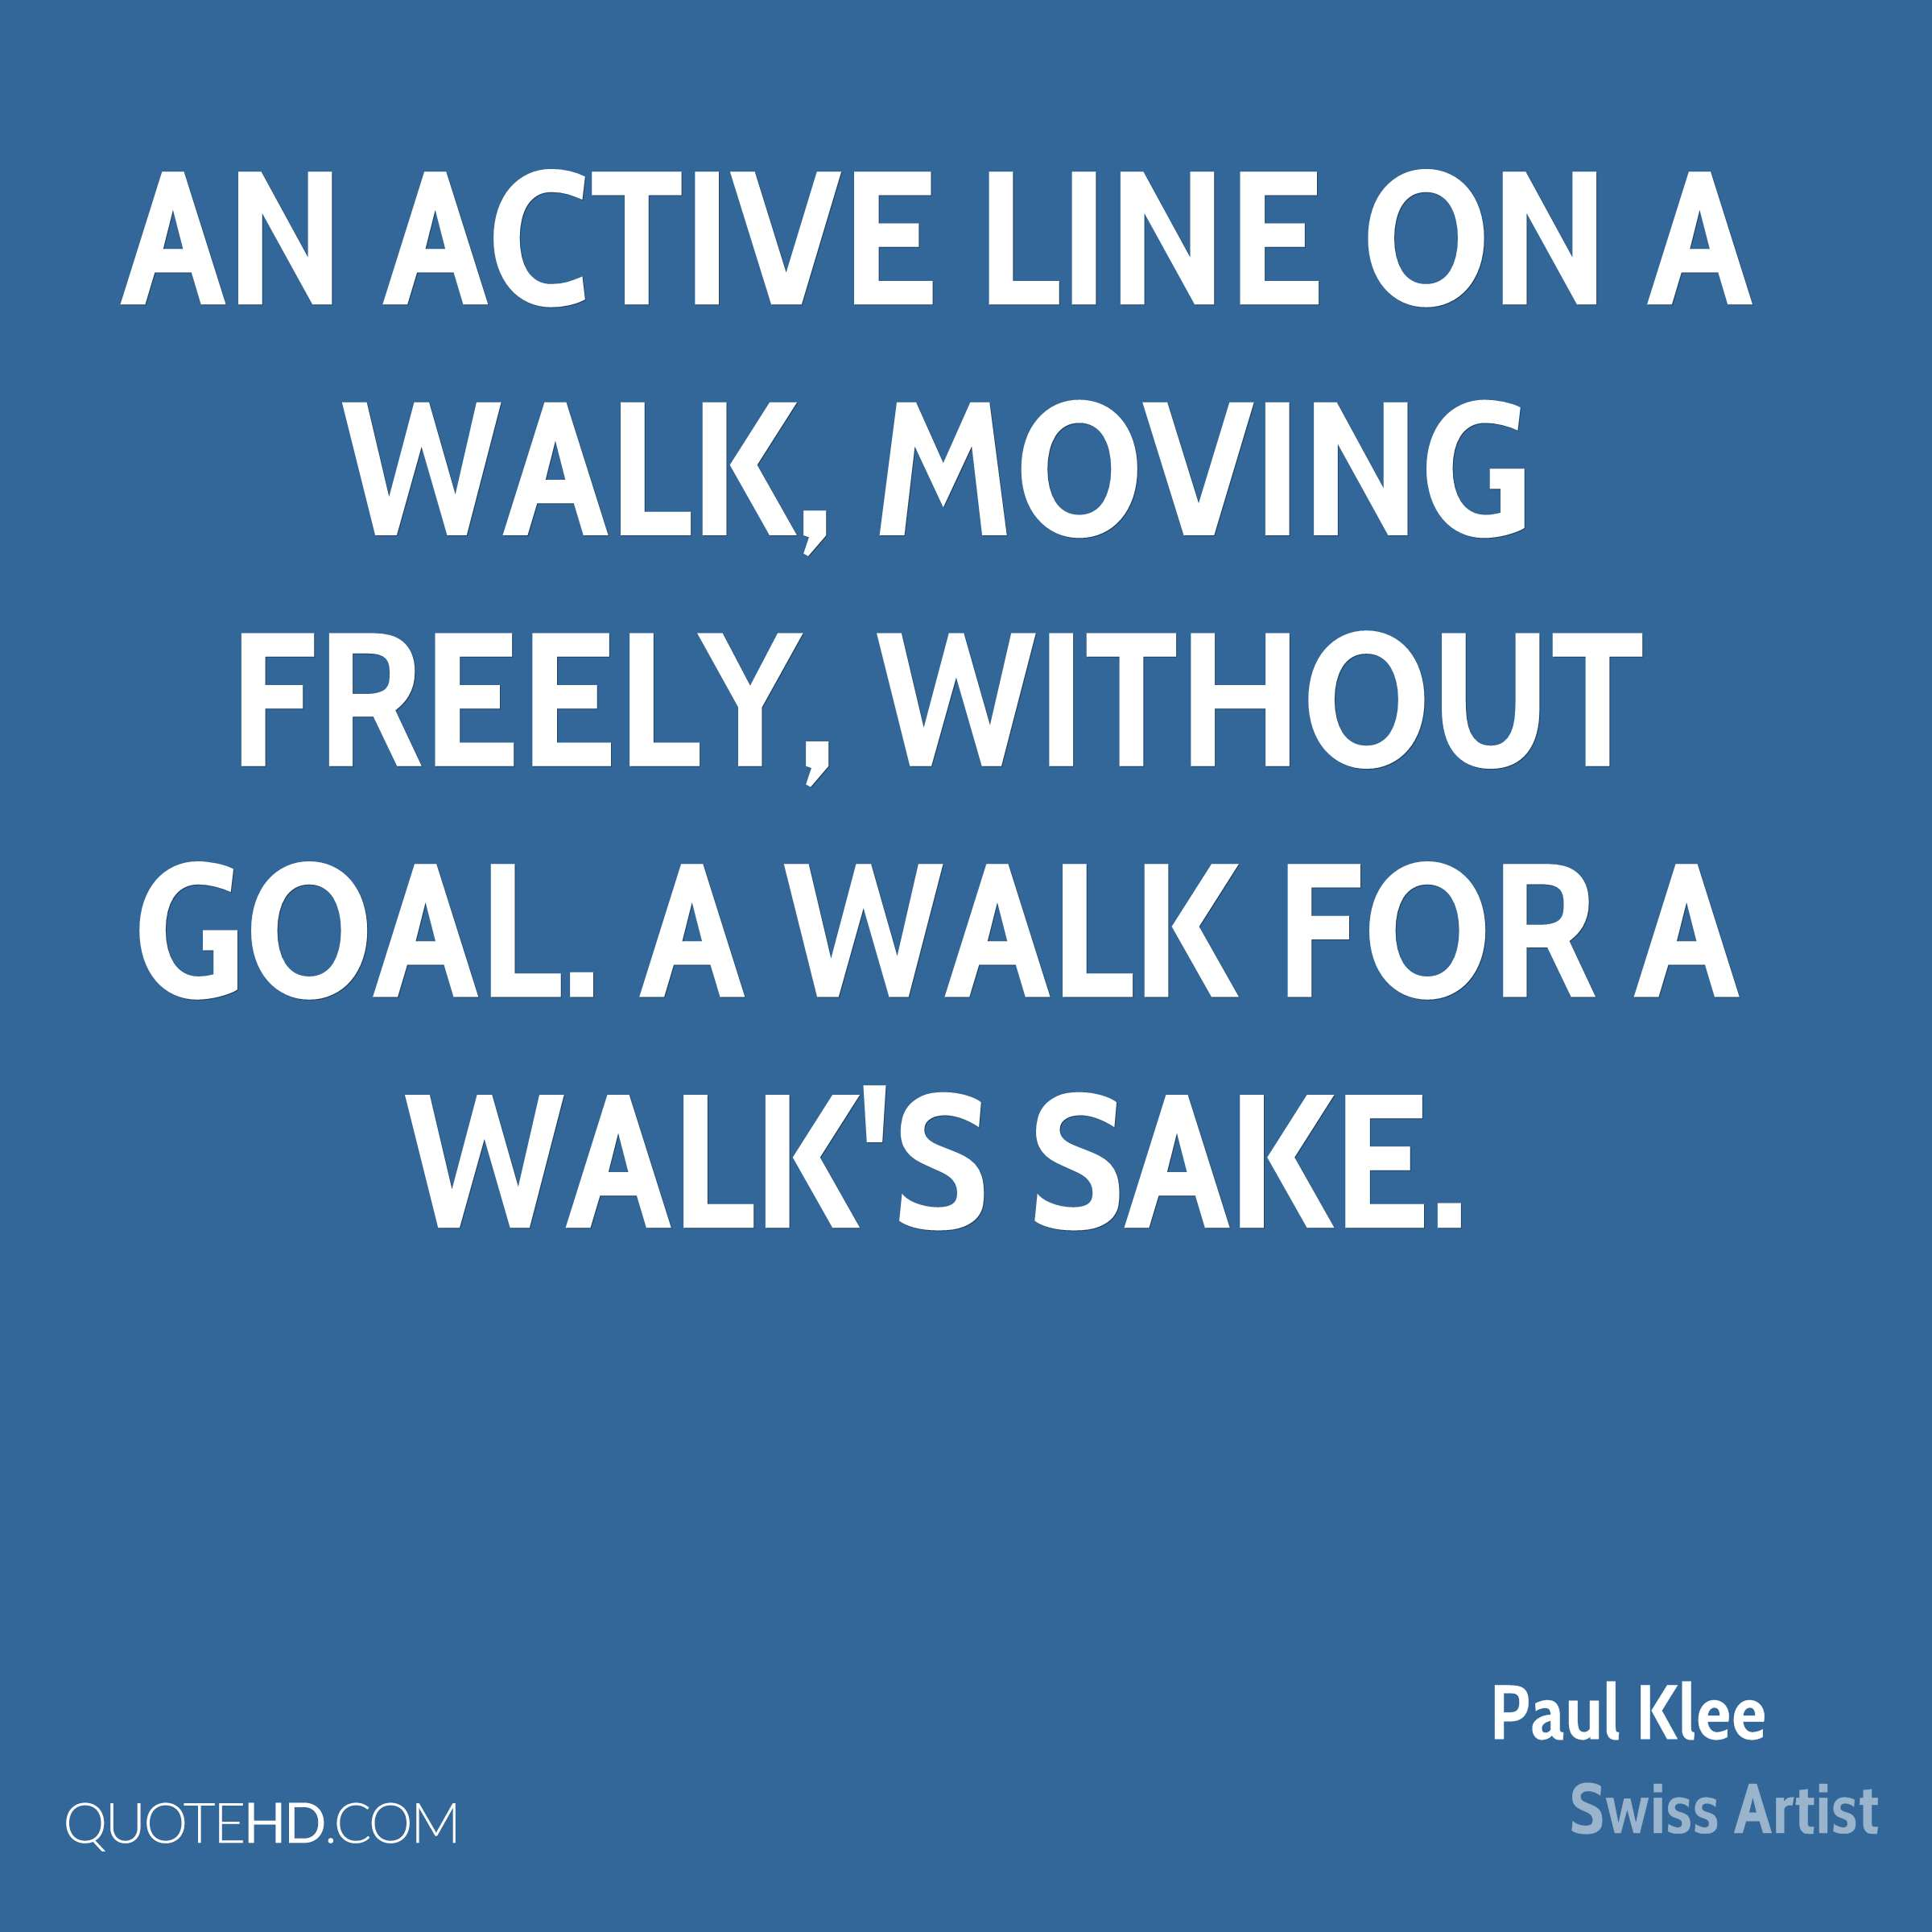 An active line on a walk, moving freely, without goal. A walk for a walk's sake.